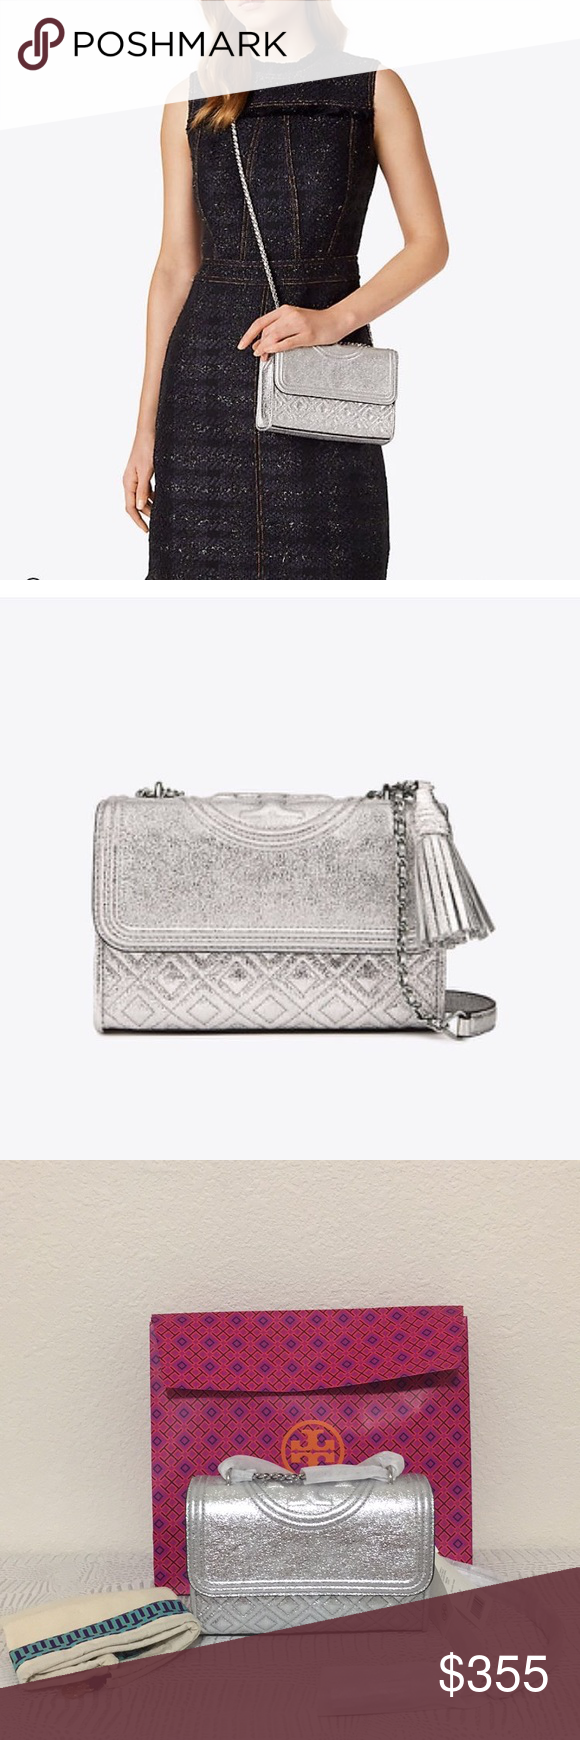 af876e59259 New Tory Burch Fleming metallic small shoulder bag 100% Authentic. Brand  new with tag comes with dust bag and paper box😍😍 New Tory Burch Fleming  metallic ...